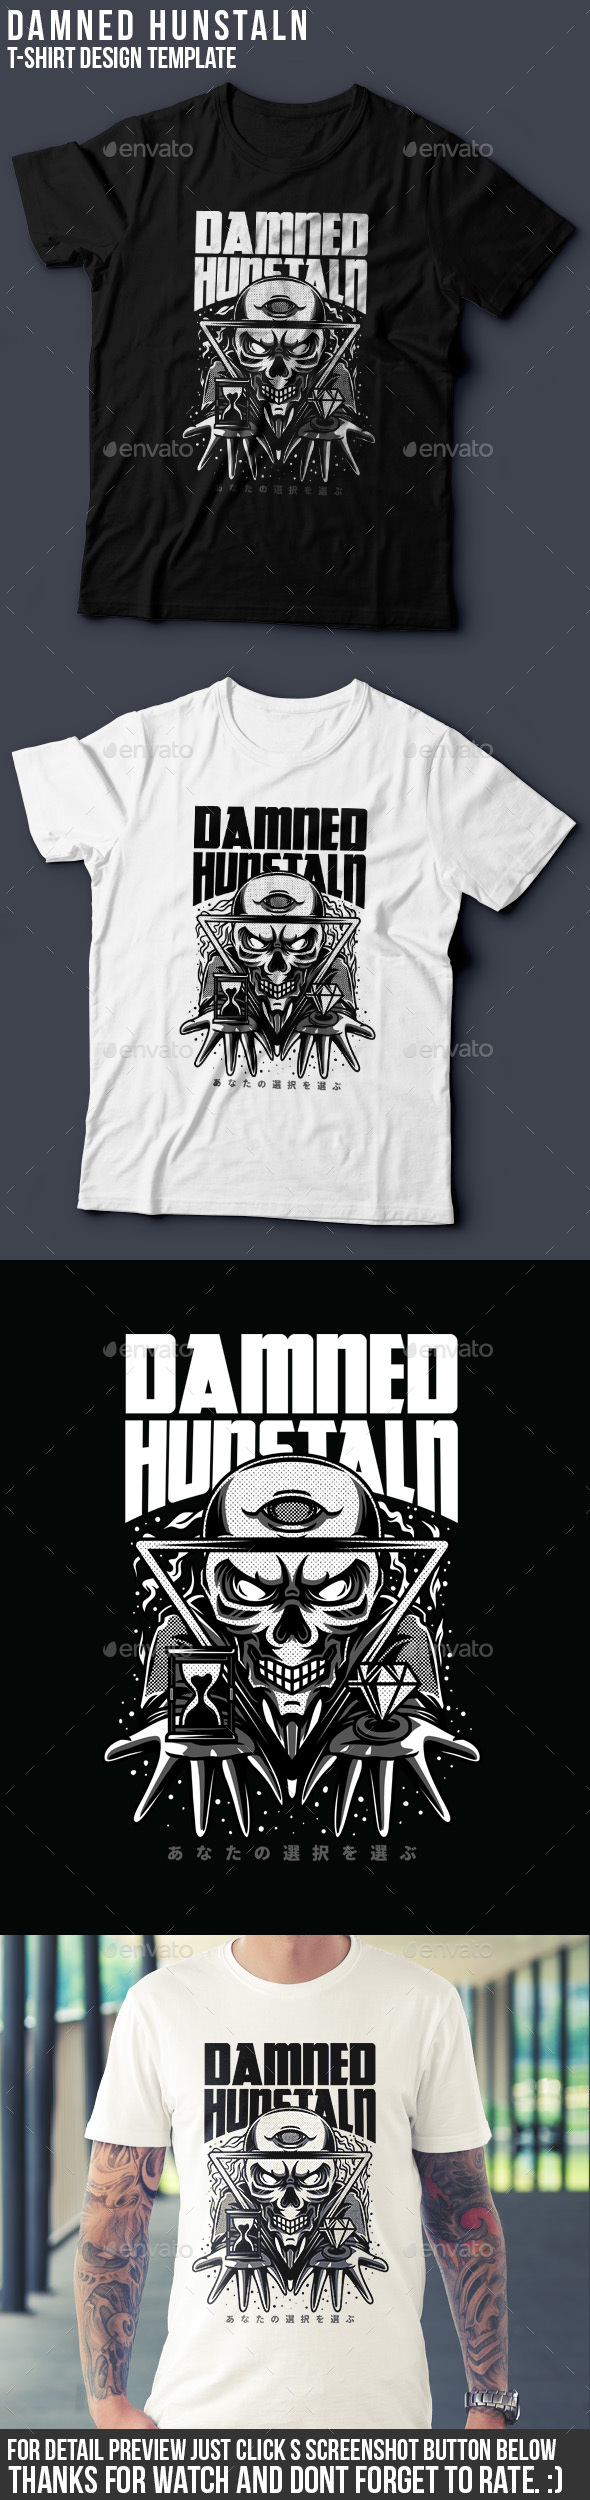 Damned Hunstaln T-Shirt Design - Grunge Designs